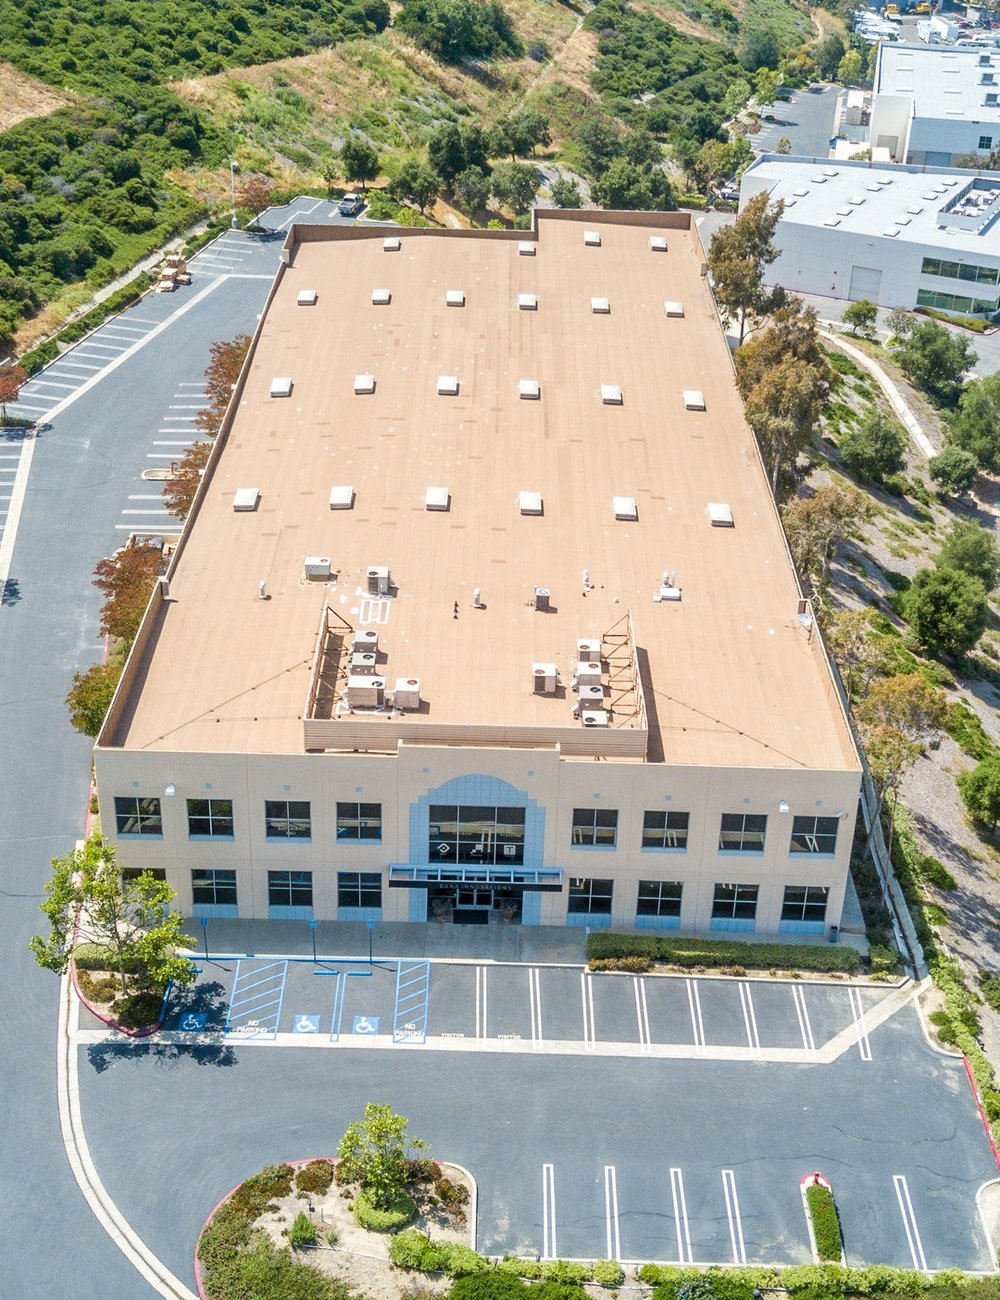 Looking For Space? - Sales, Leases, Subleases, Investments: We list all varieties of commercial property in South Orange County. Click below to view the current availabilities.Do you know your property requirements but don't see a current opening that matches? Contact us and we will find a facility that fits your needs!